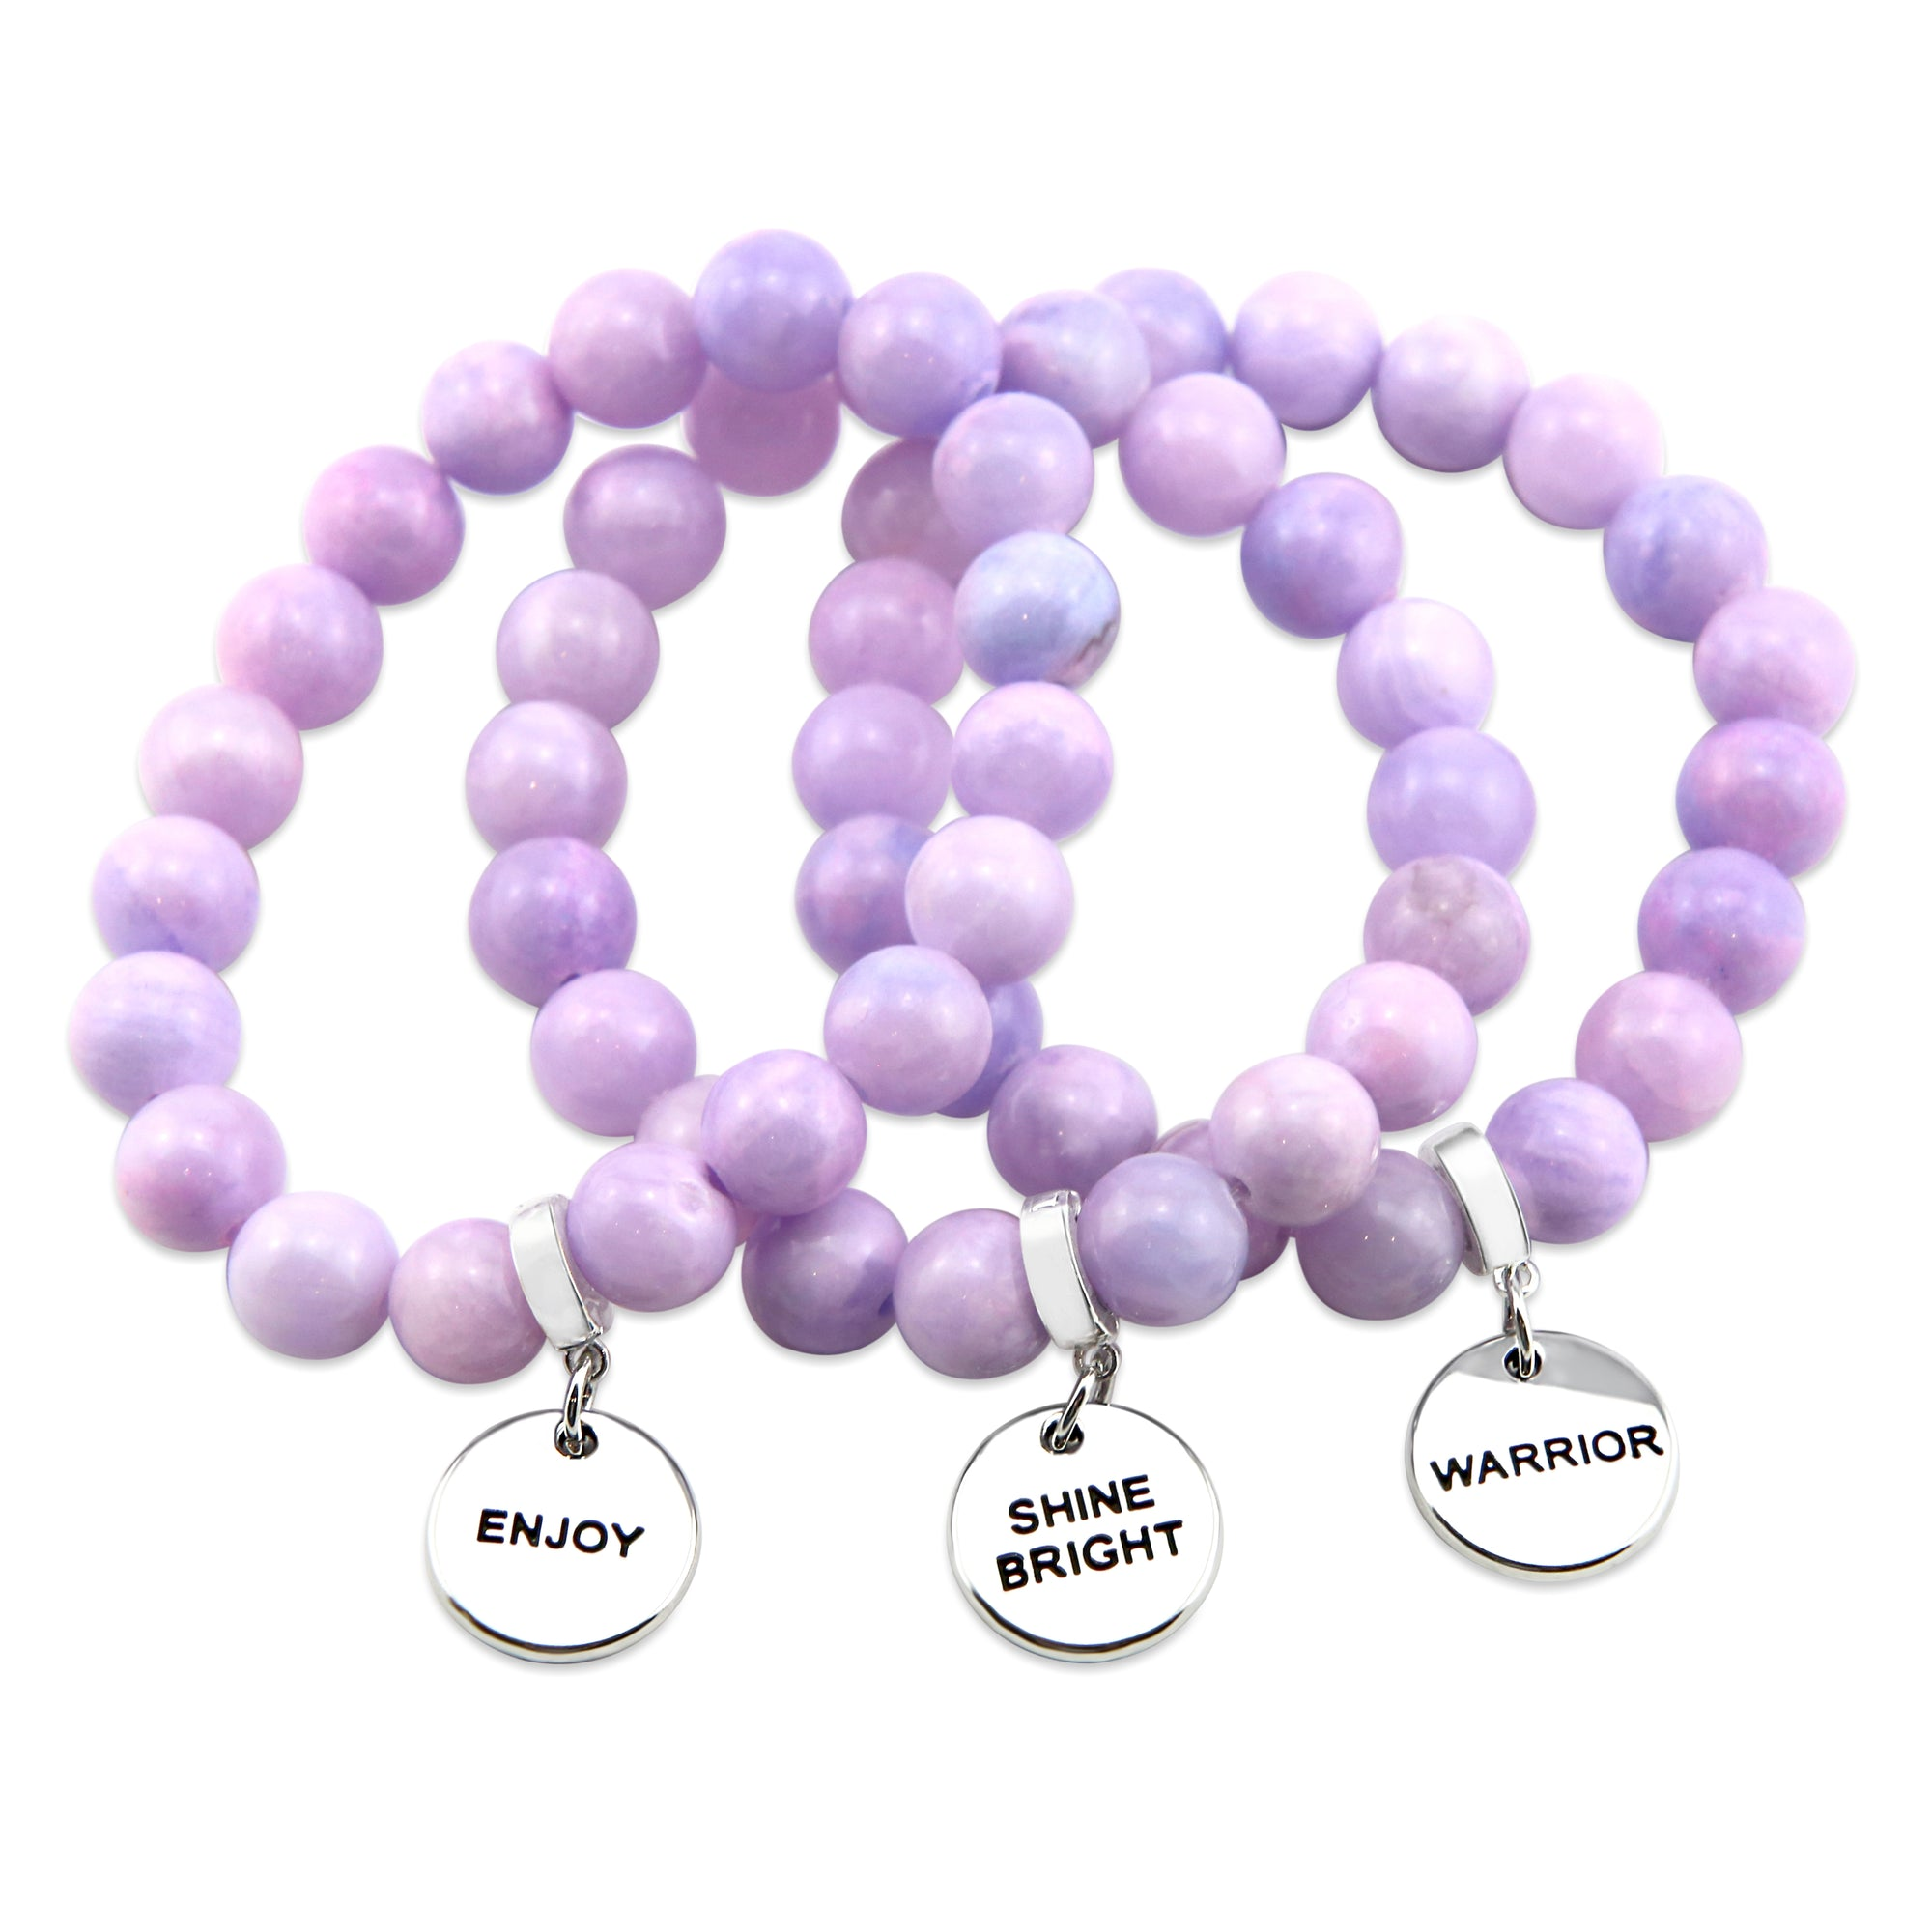 Stone Bracelet - Bashful Lilac Pastel Agate 10mm Beads - with Silver Word Charm